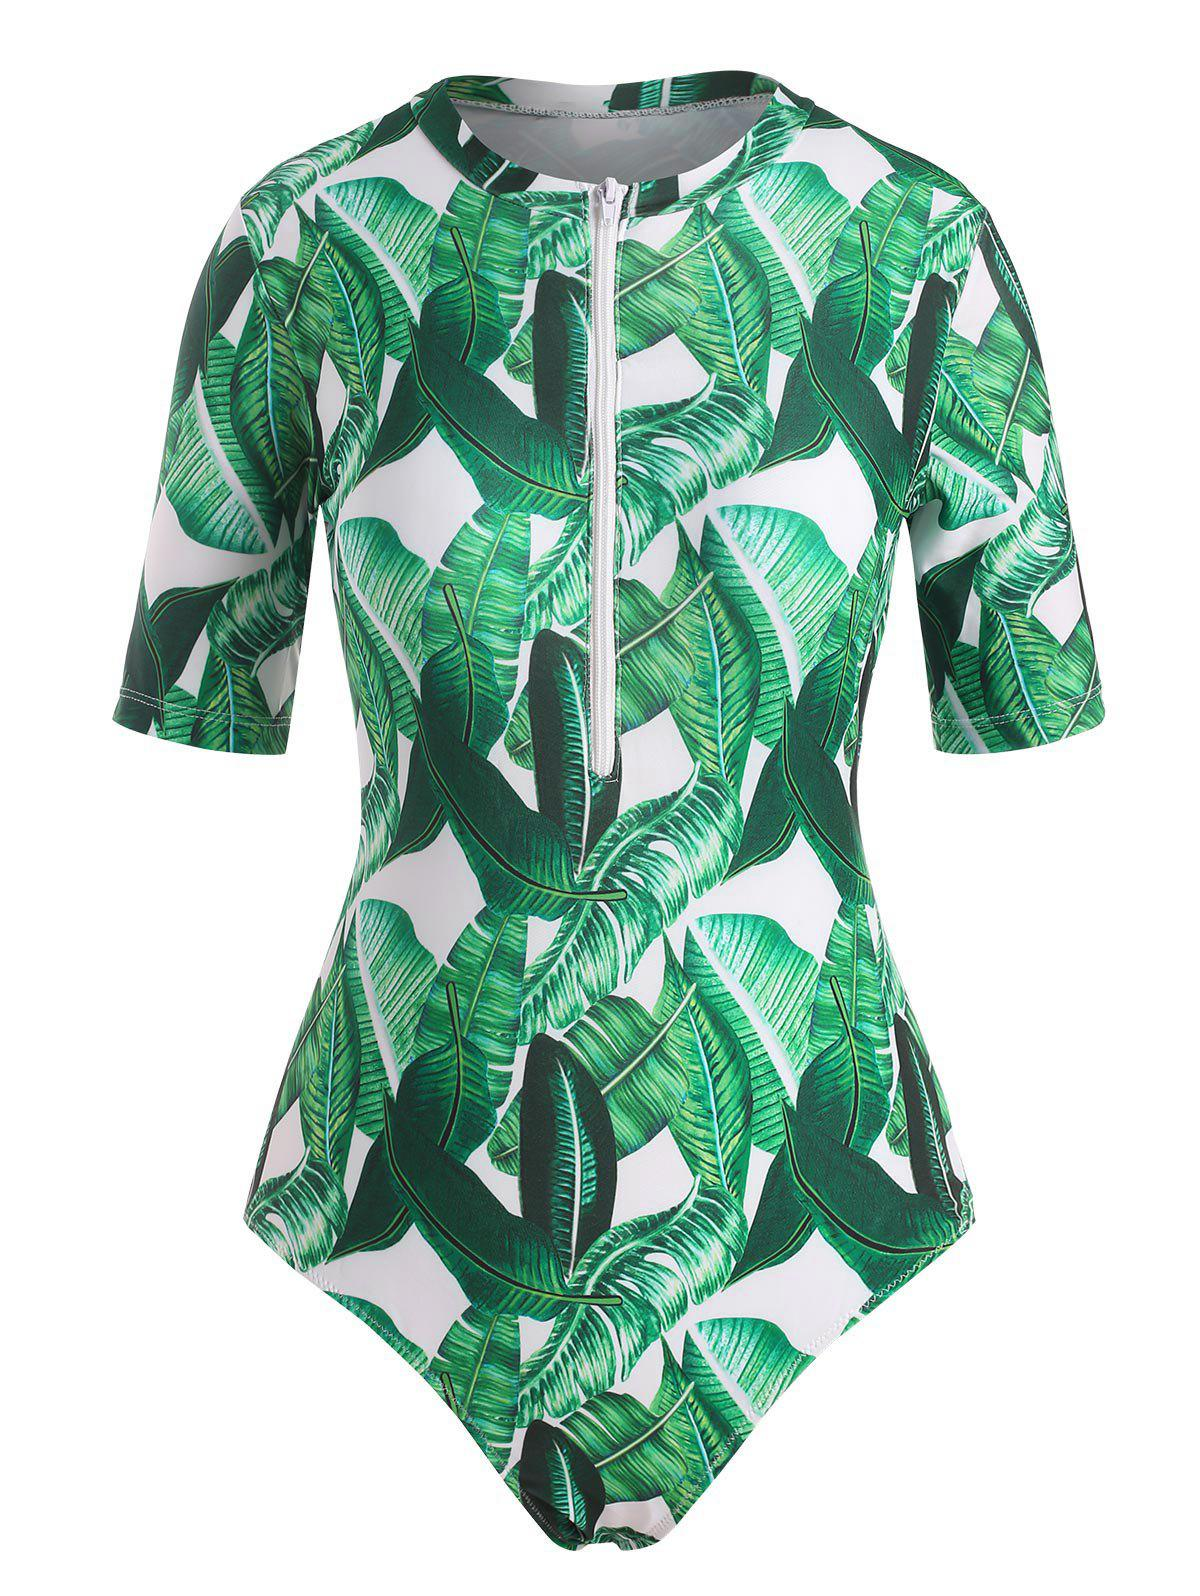 Chic Palm Leaf Print Short Sleeve One-Piece Swimsuit